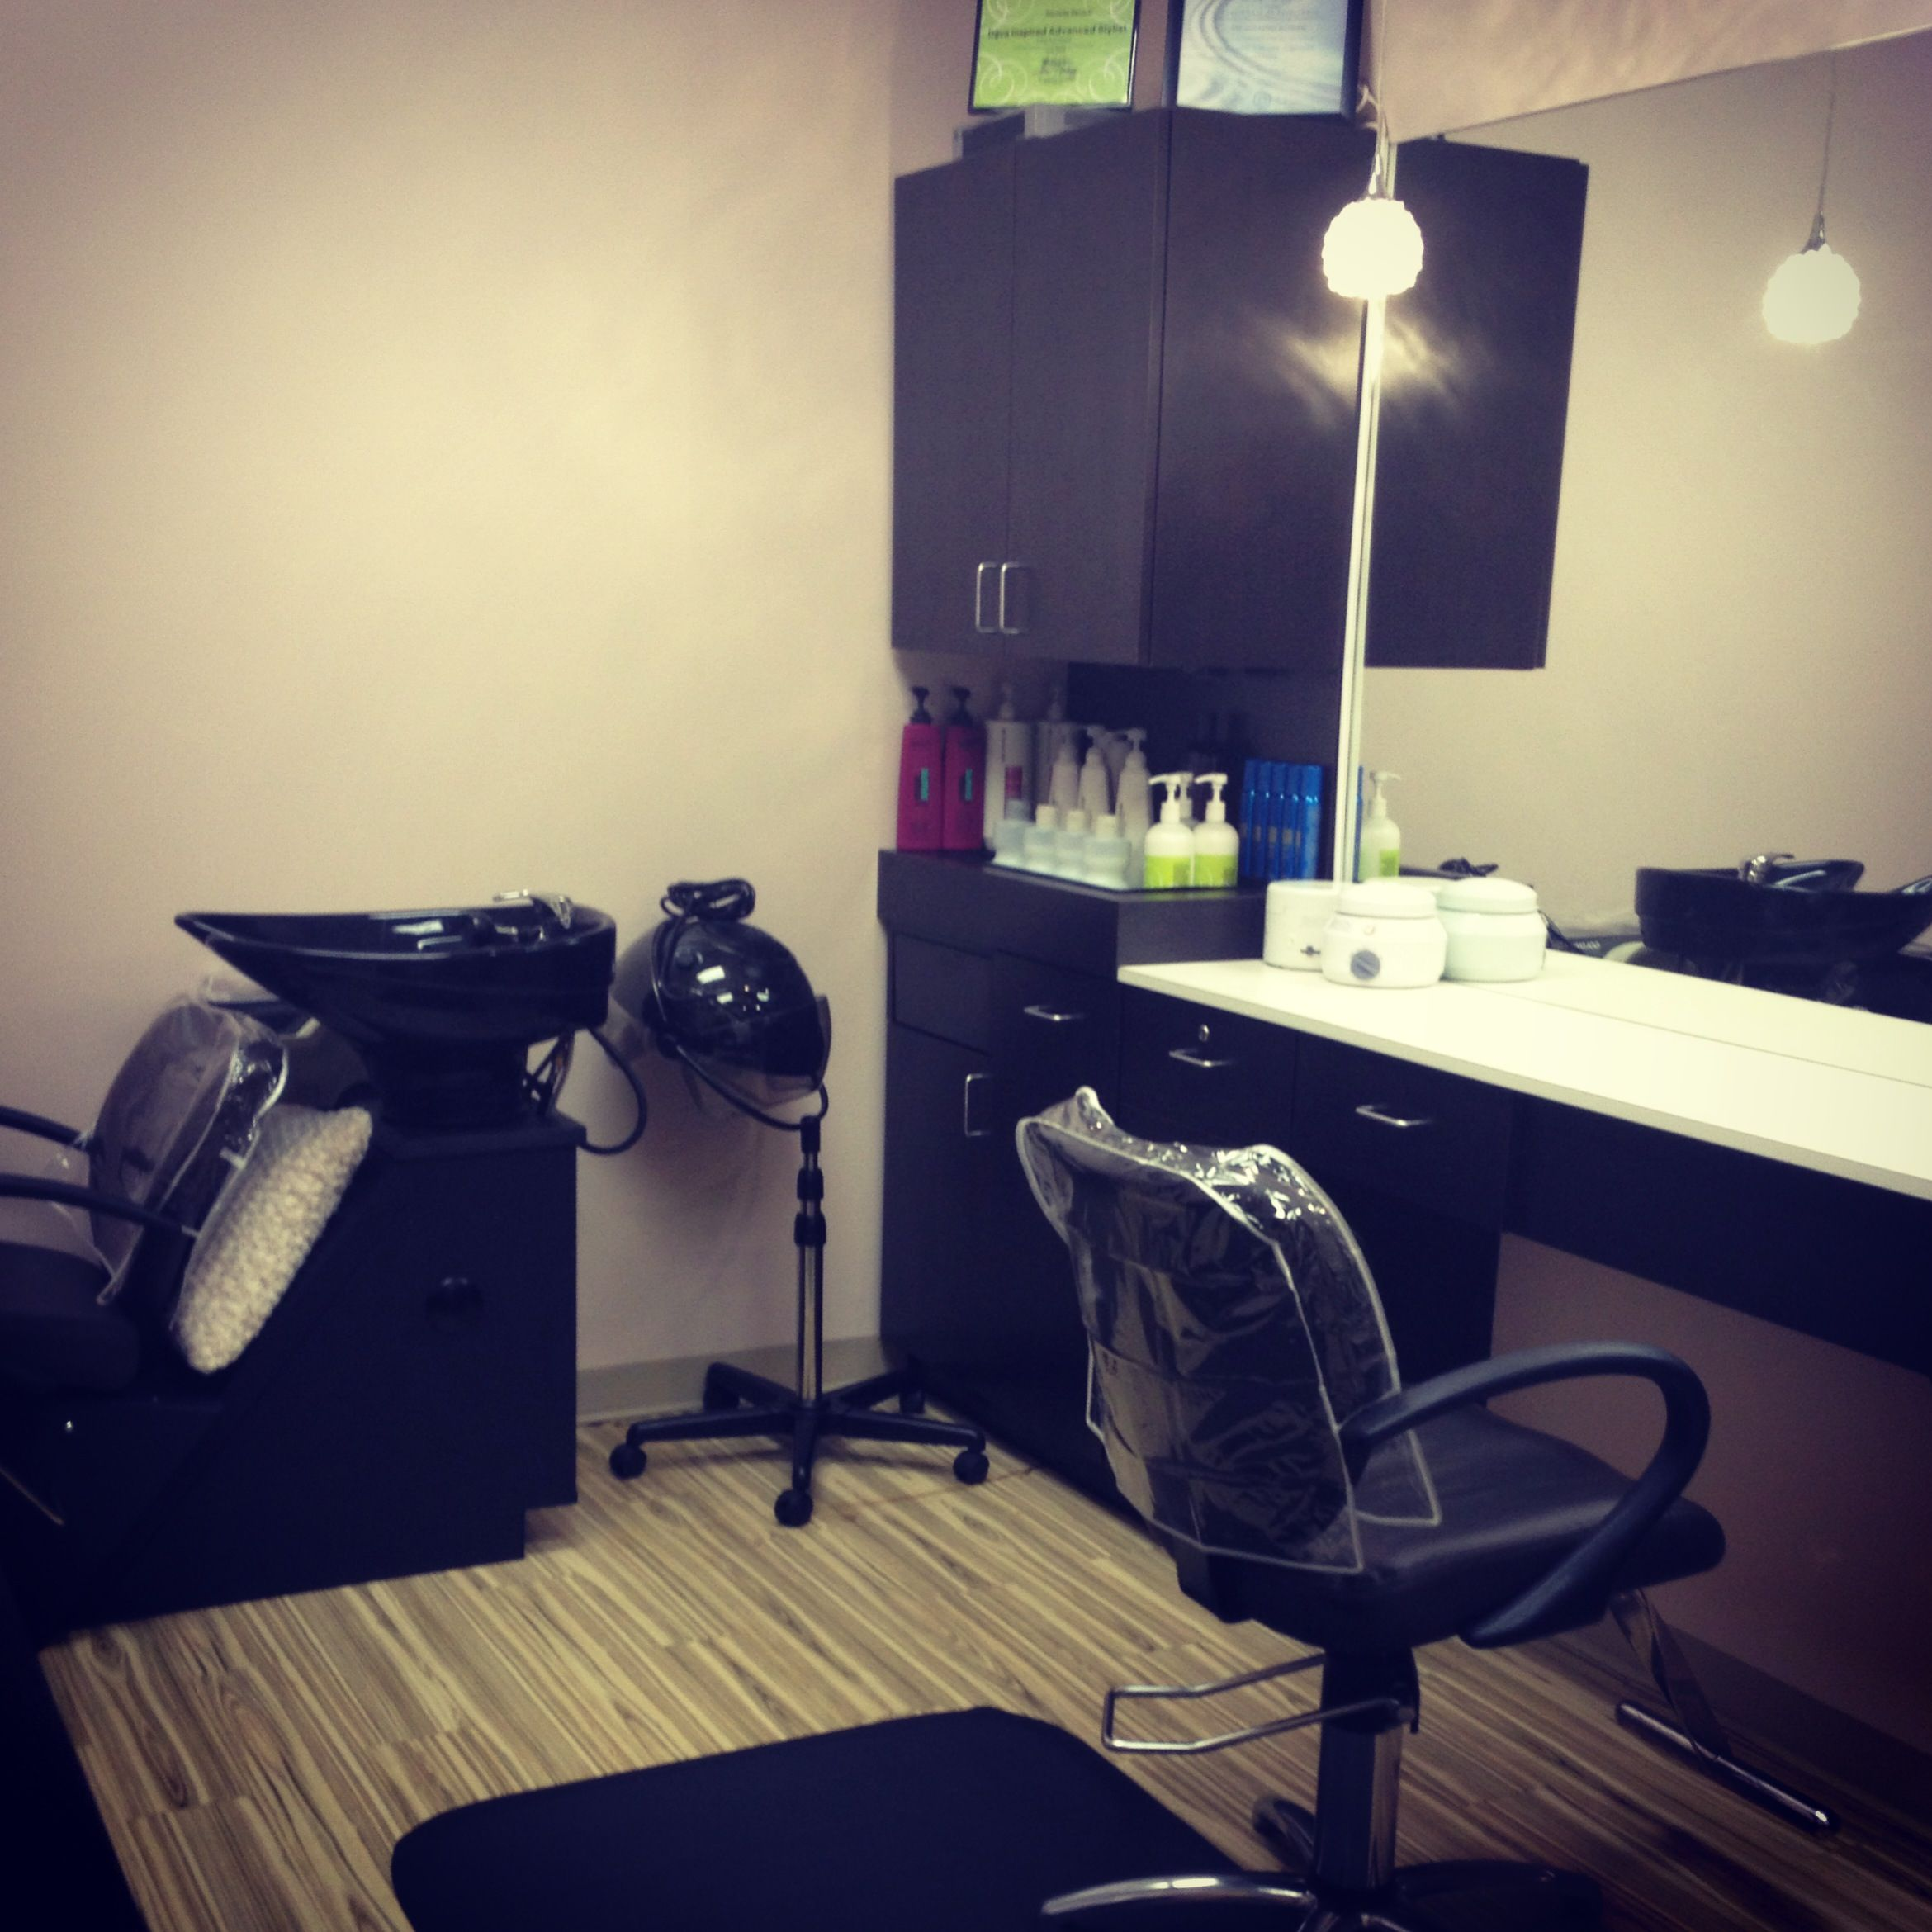 Hair Salon 1 Here It Is My One Room Salon Suite 5650 W 86th St Suite